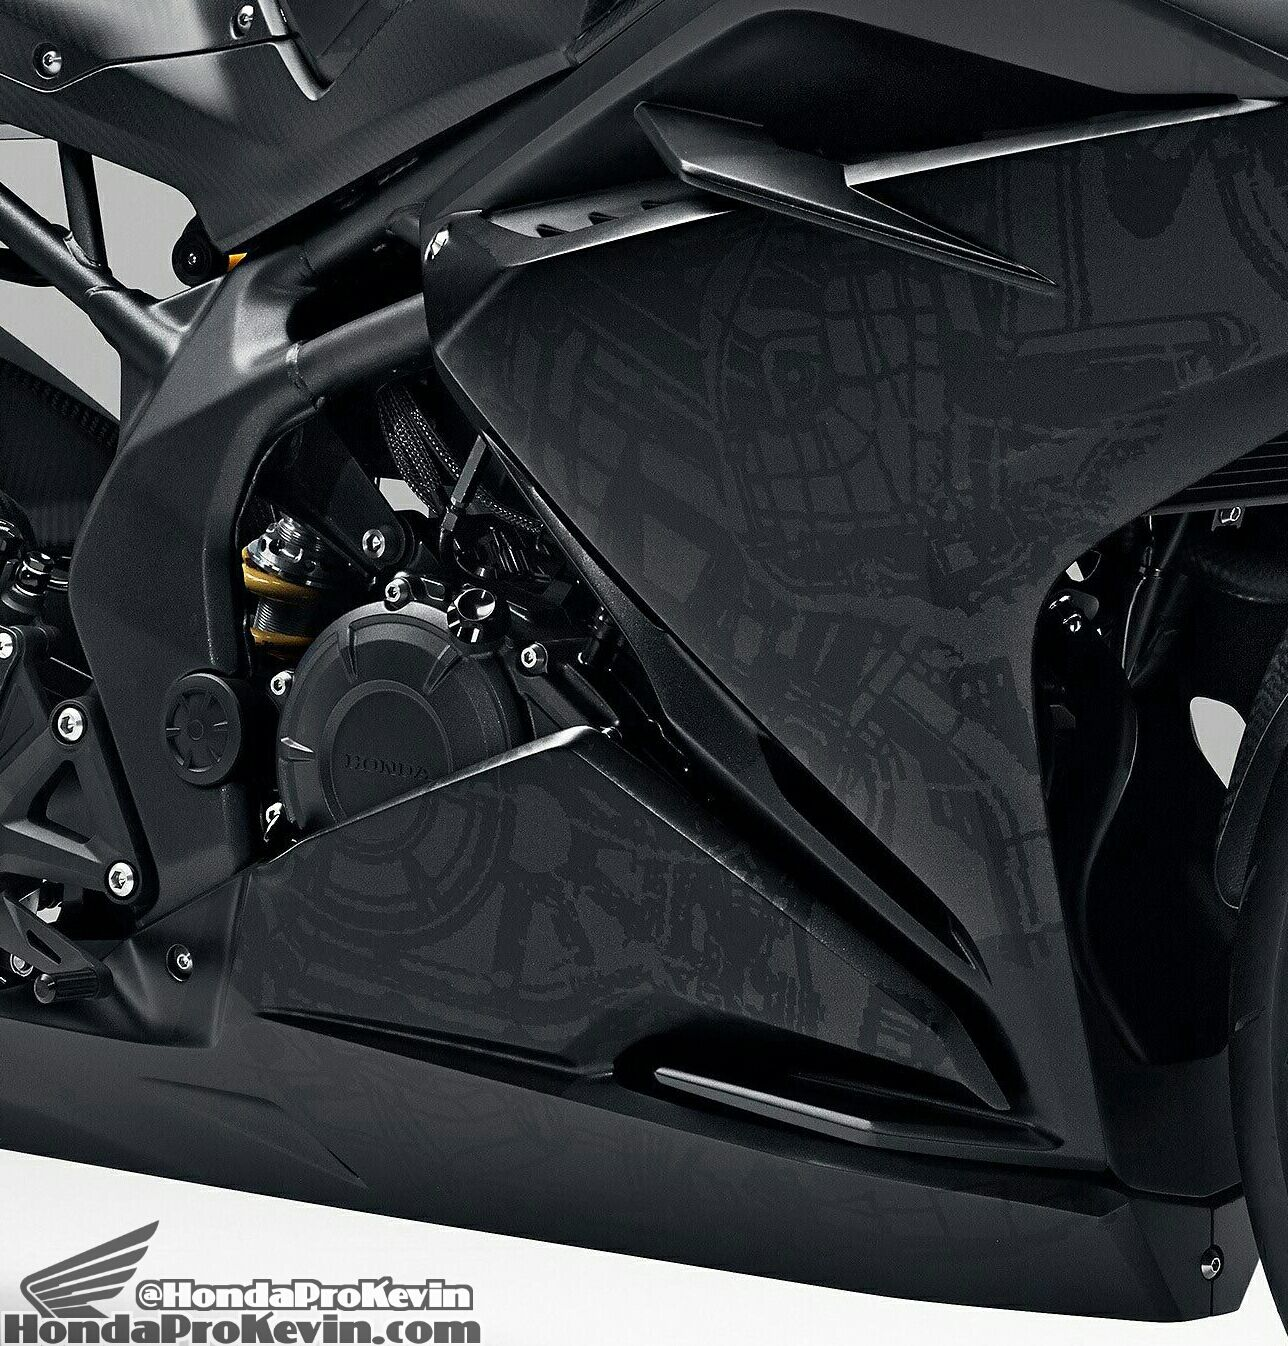 Check Out The Lights Over The: 2016 Honda Light Weight Super Sports Concept Motorcycle